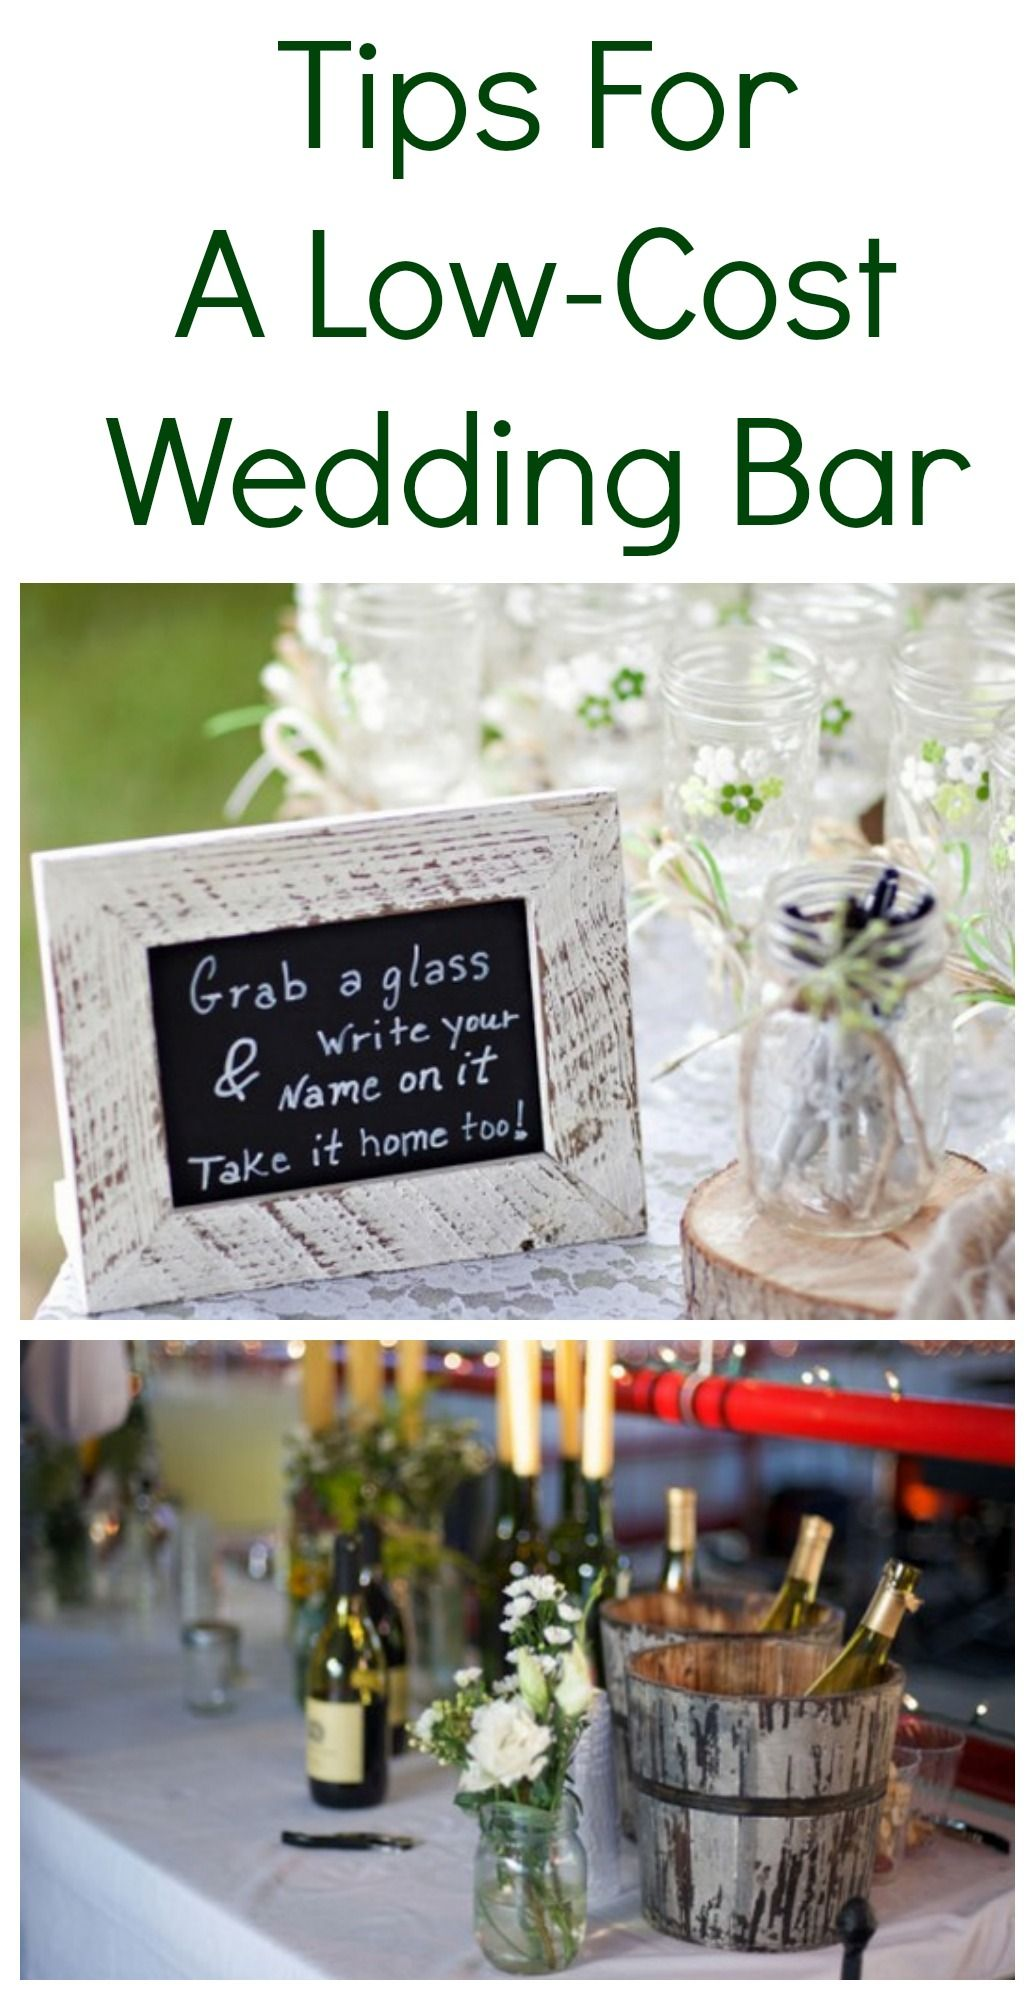 5 Tips for a Low-Cost DIY Wedding Bar - Rustic Wedding Chic | Diy wedding  bar, Frugal wedding, Low cost wedding